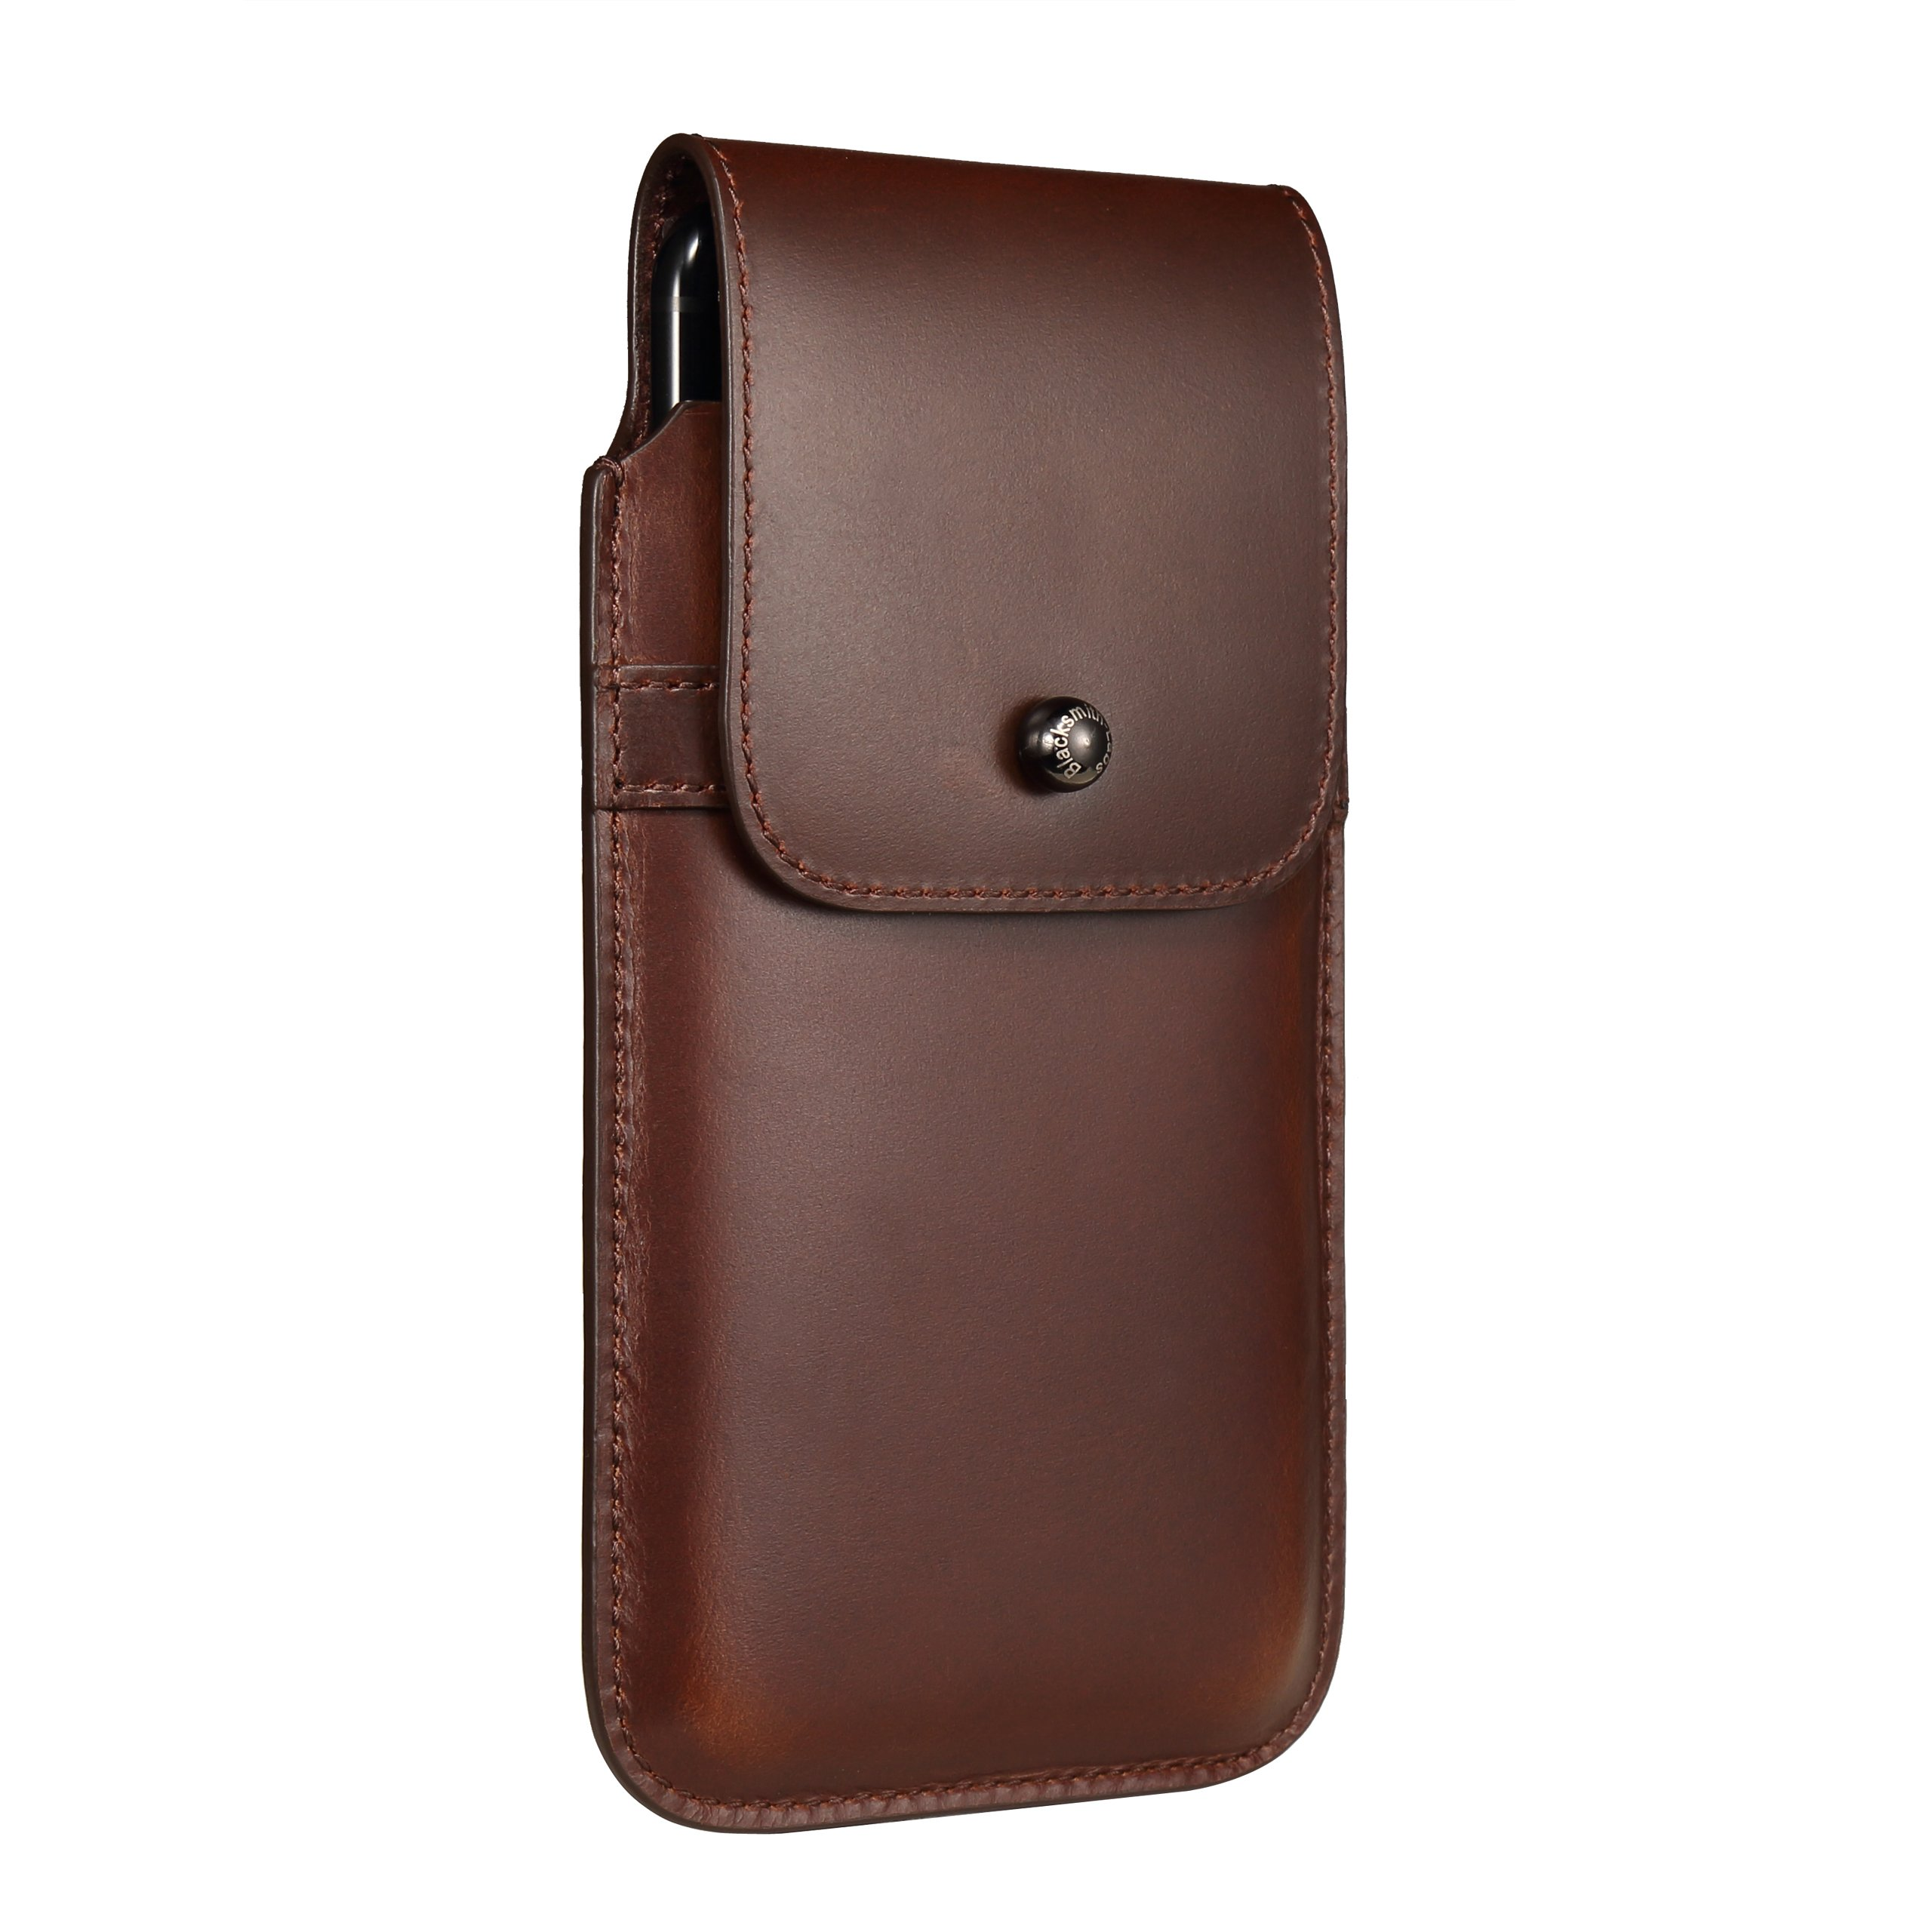 Blacksmith-Labs Barrett 2017 Premium Genuine Leather Swivel Belt Clip Holster for Apple iPhone 7 Plus (5.5 inch screen) for use with no cases or covers - Brown Cowhide/Gunmetal Belt Clip